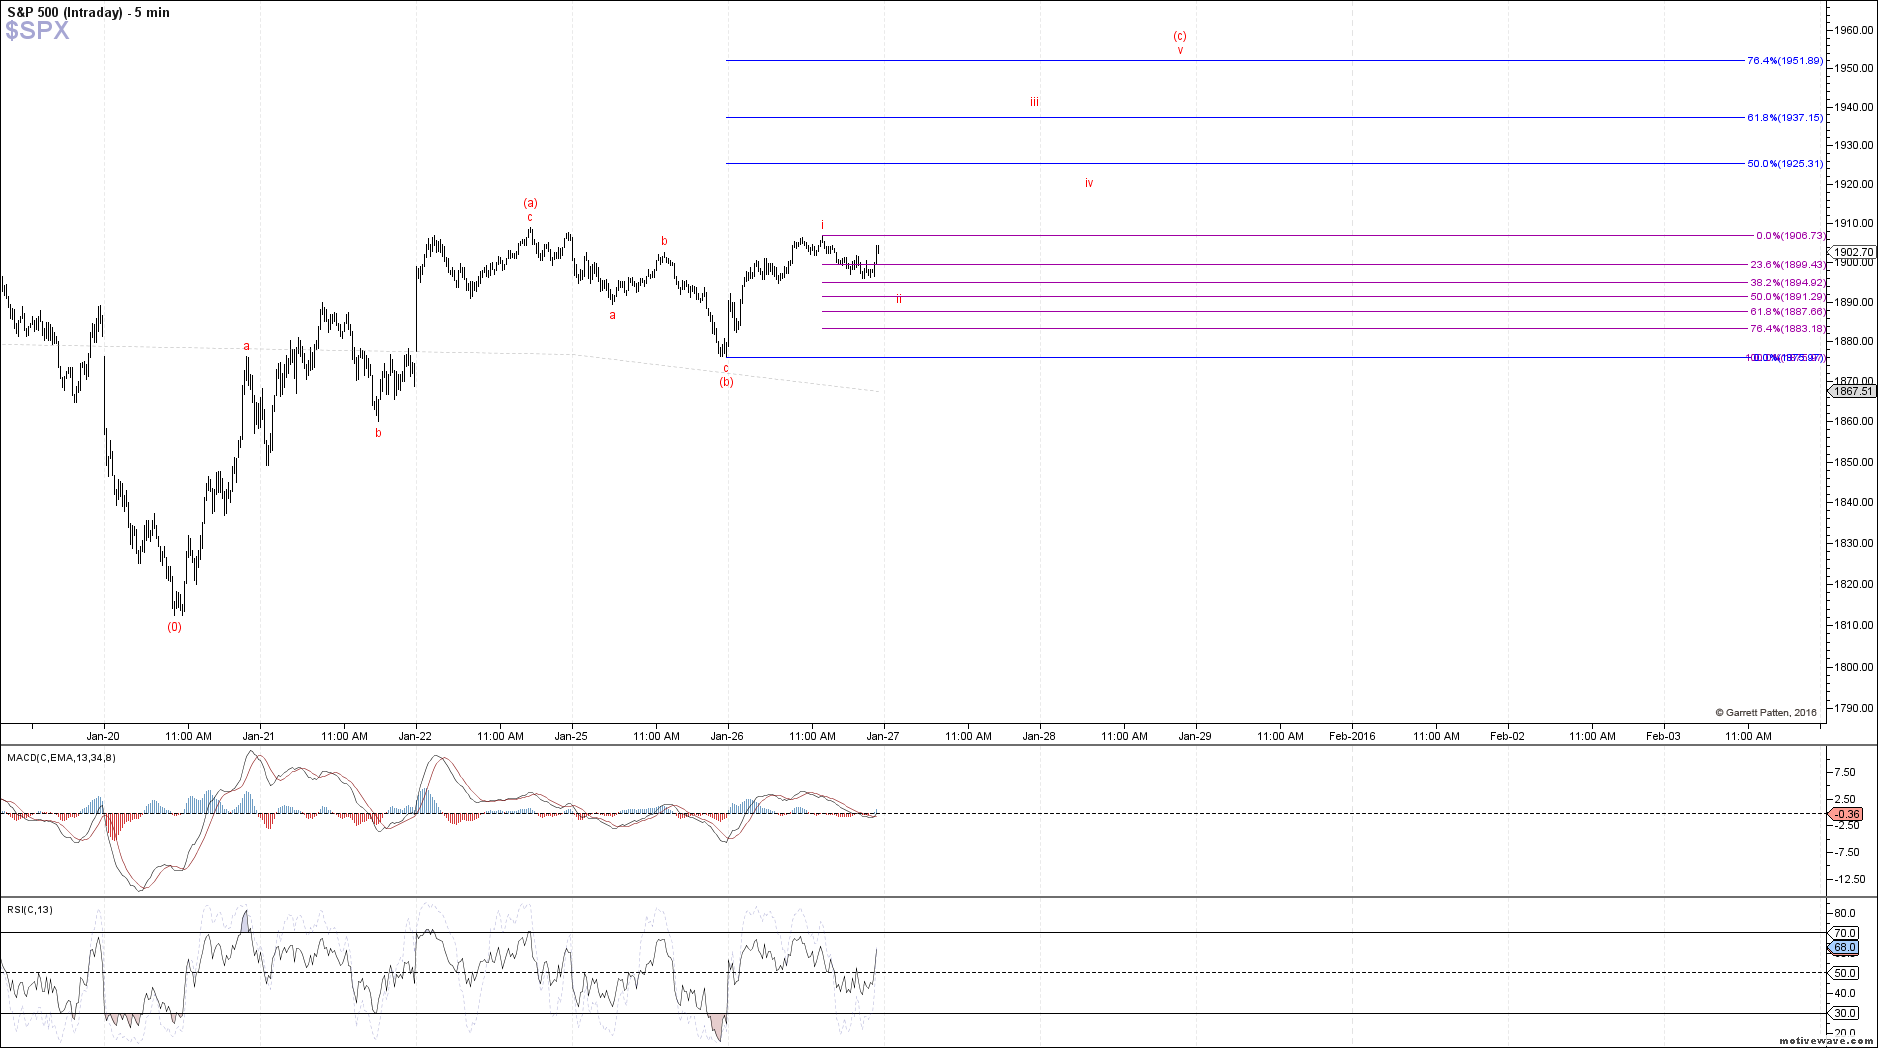 $SPX - Intraday - Jan-26 1347 PM (5 min)